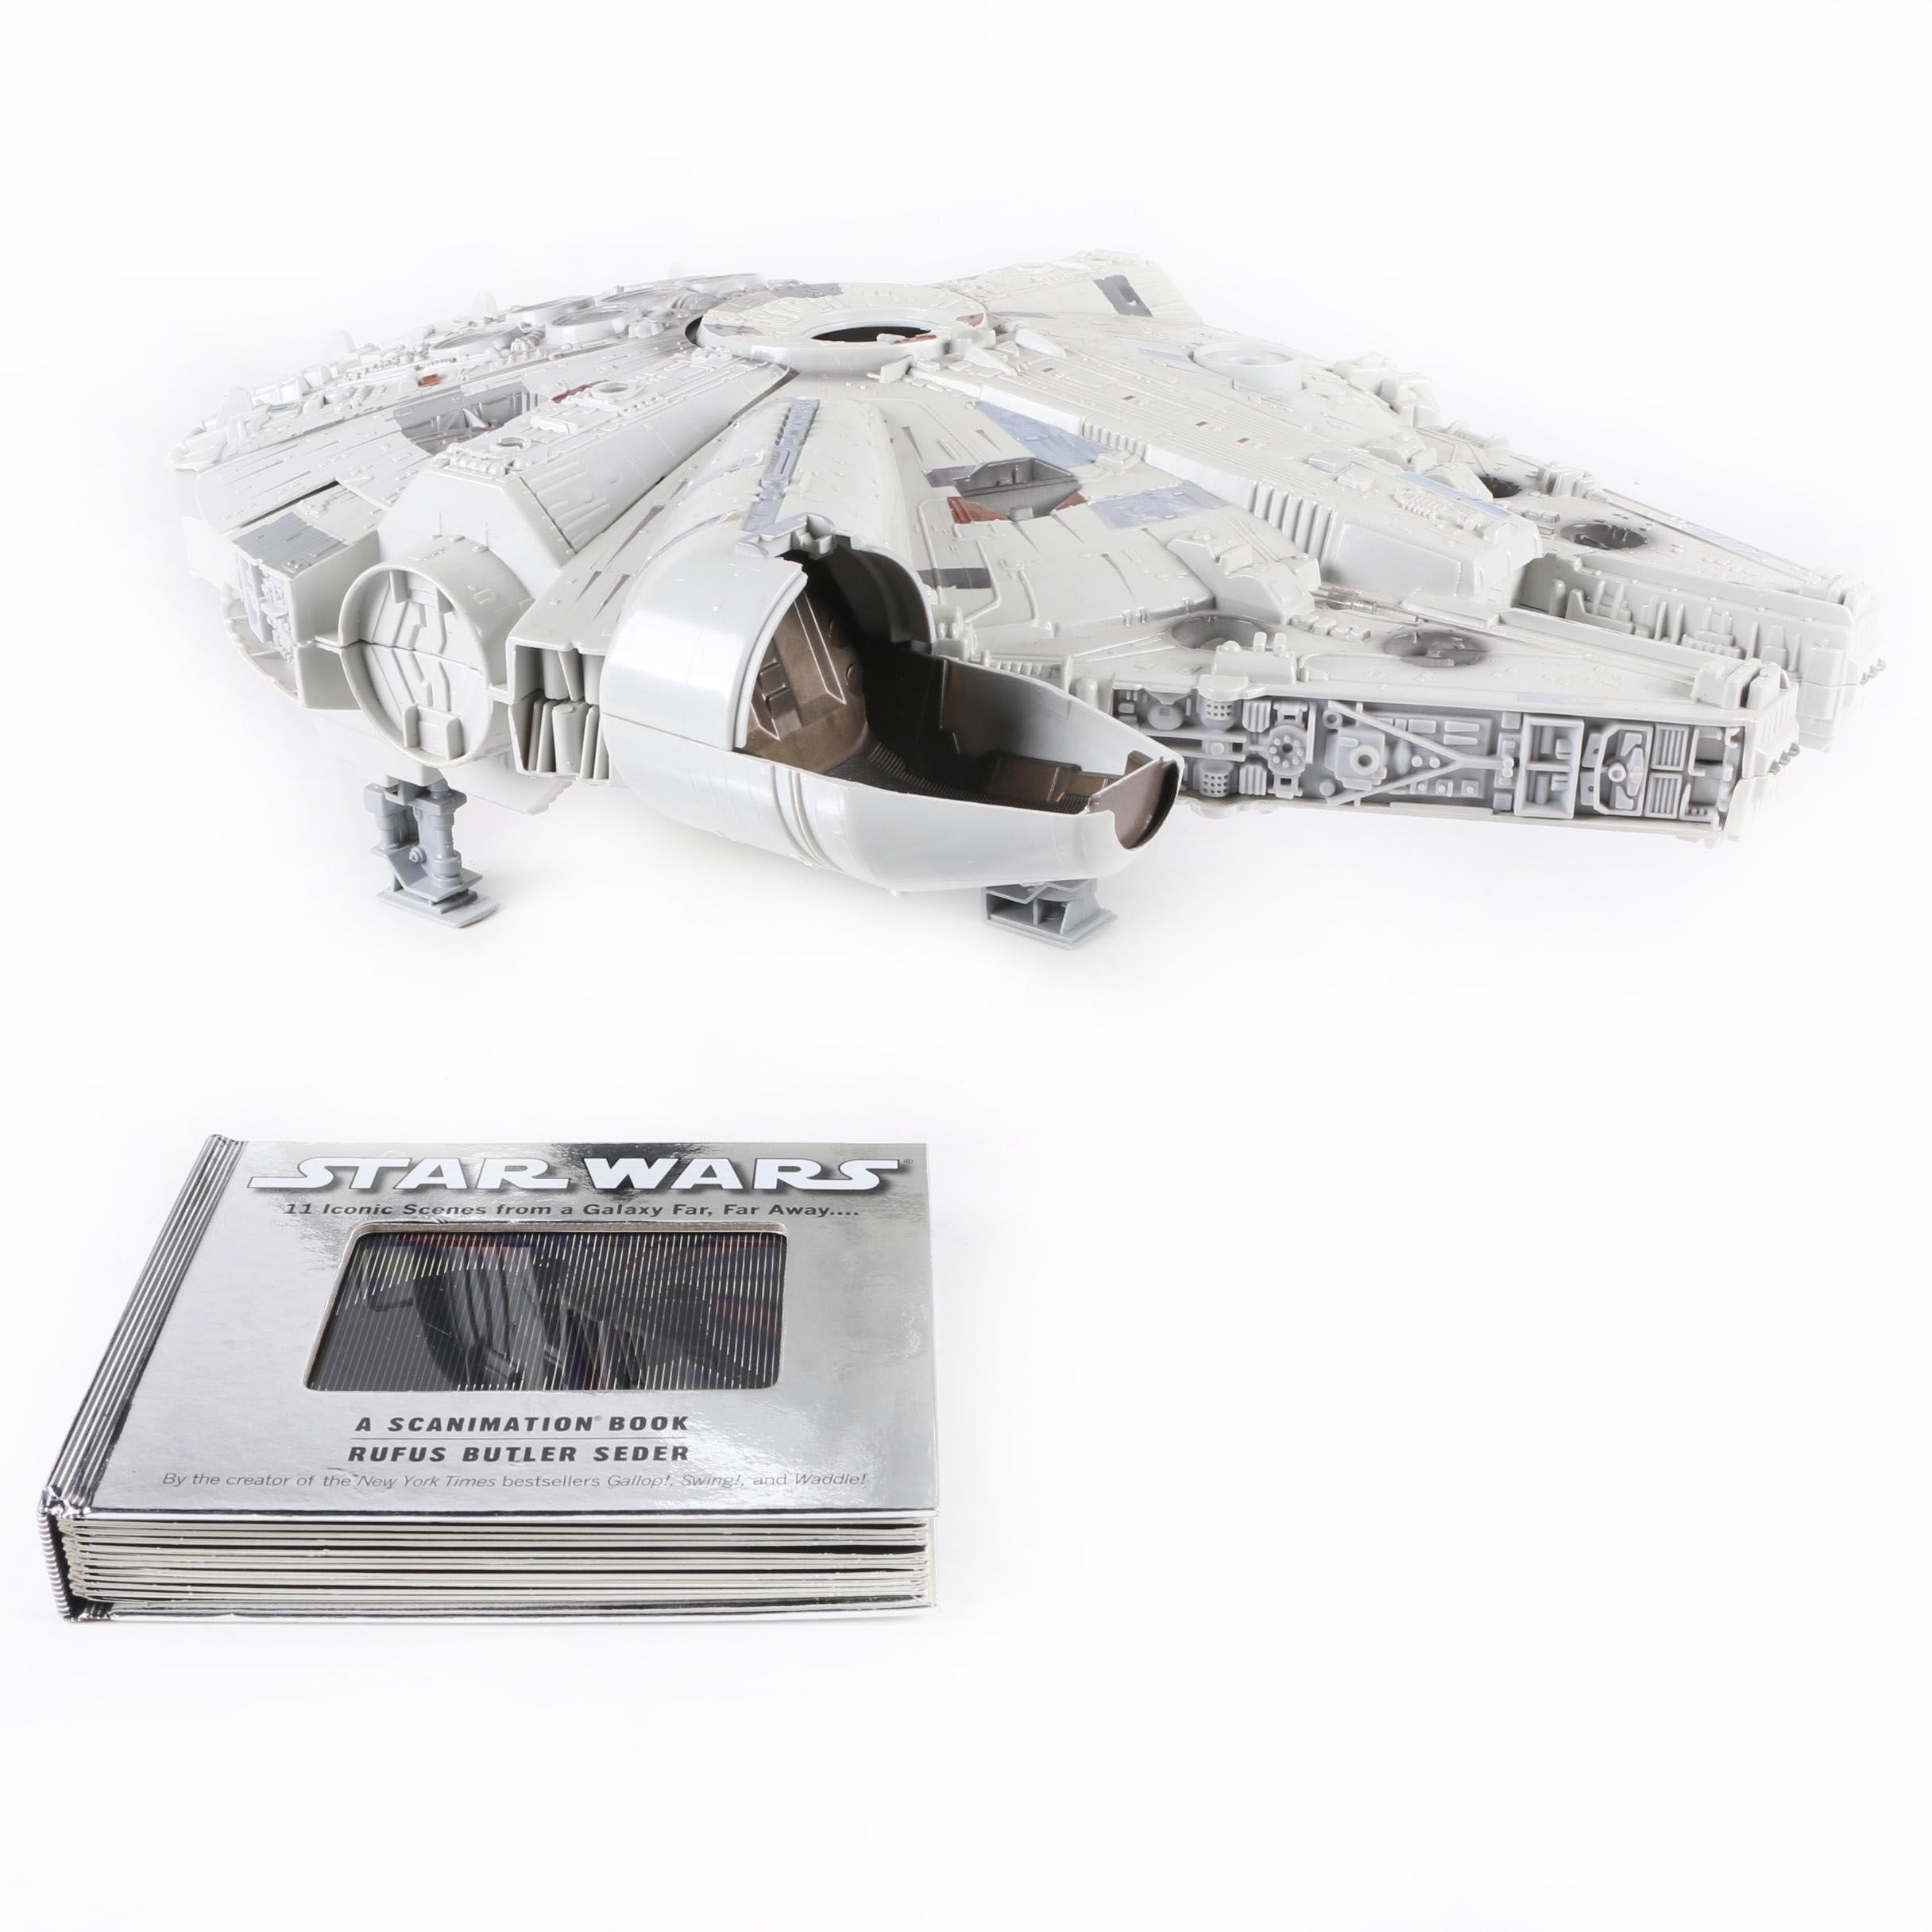 Star Wars Millennium Falcon Play Set and 2010 Scanimation Book